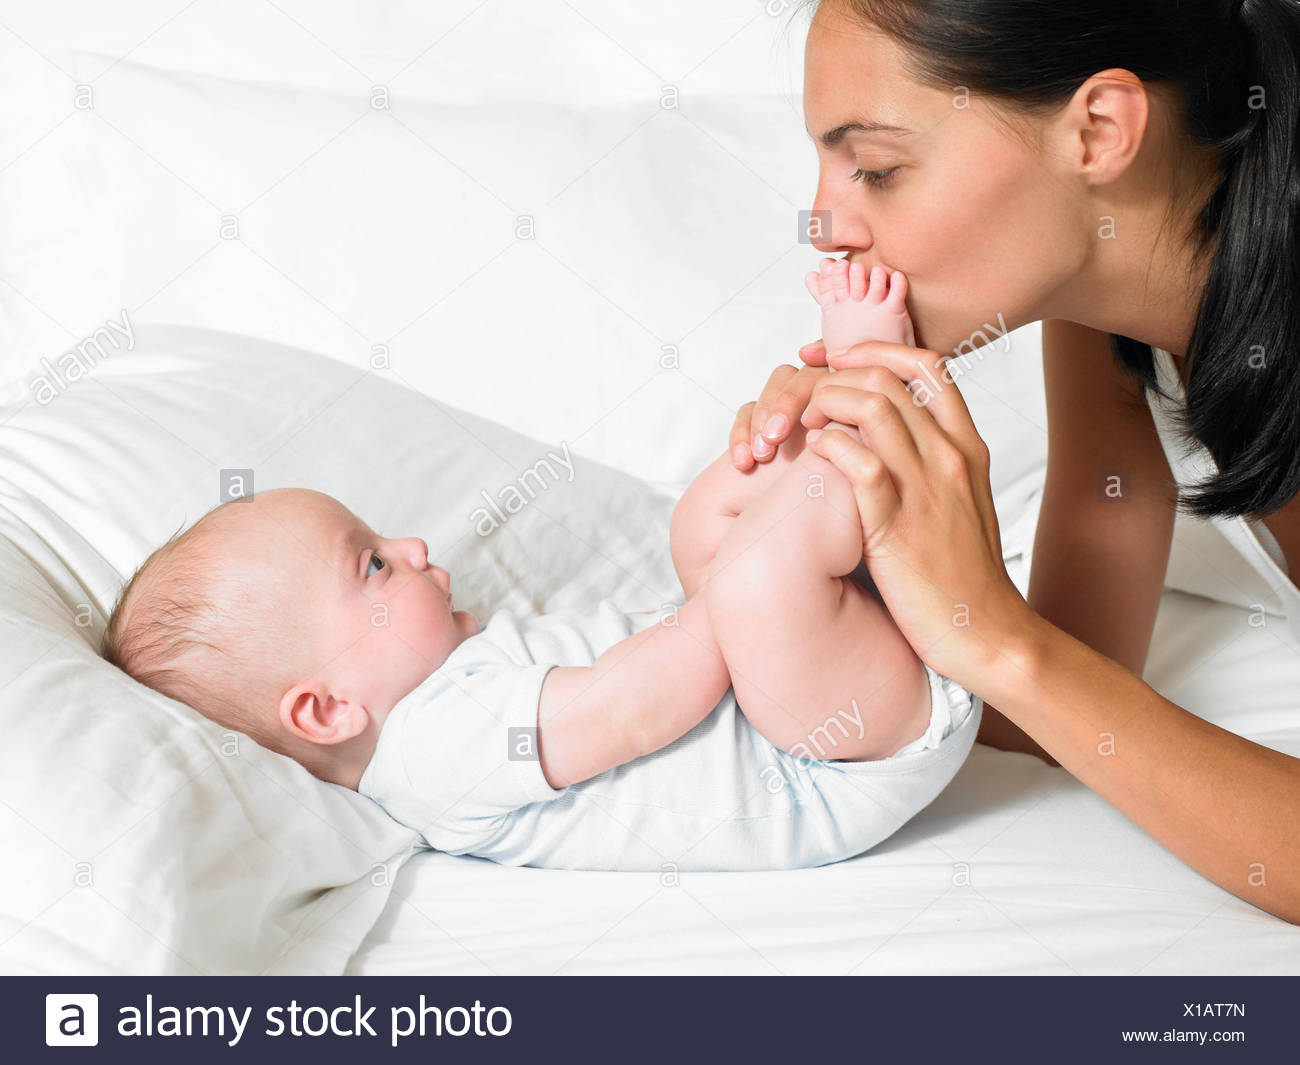 Mother kissing her new-born baby's feet Stock Photo